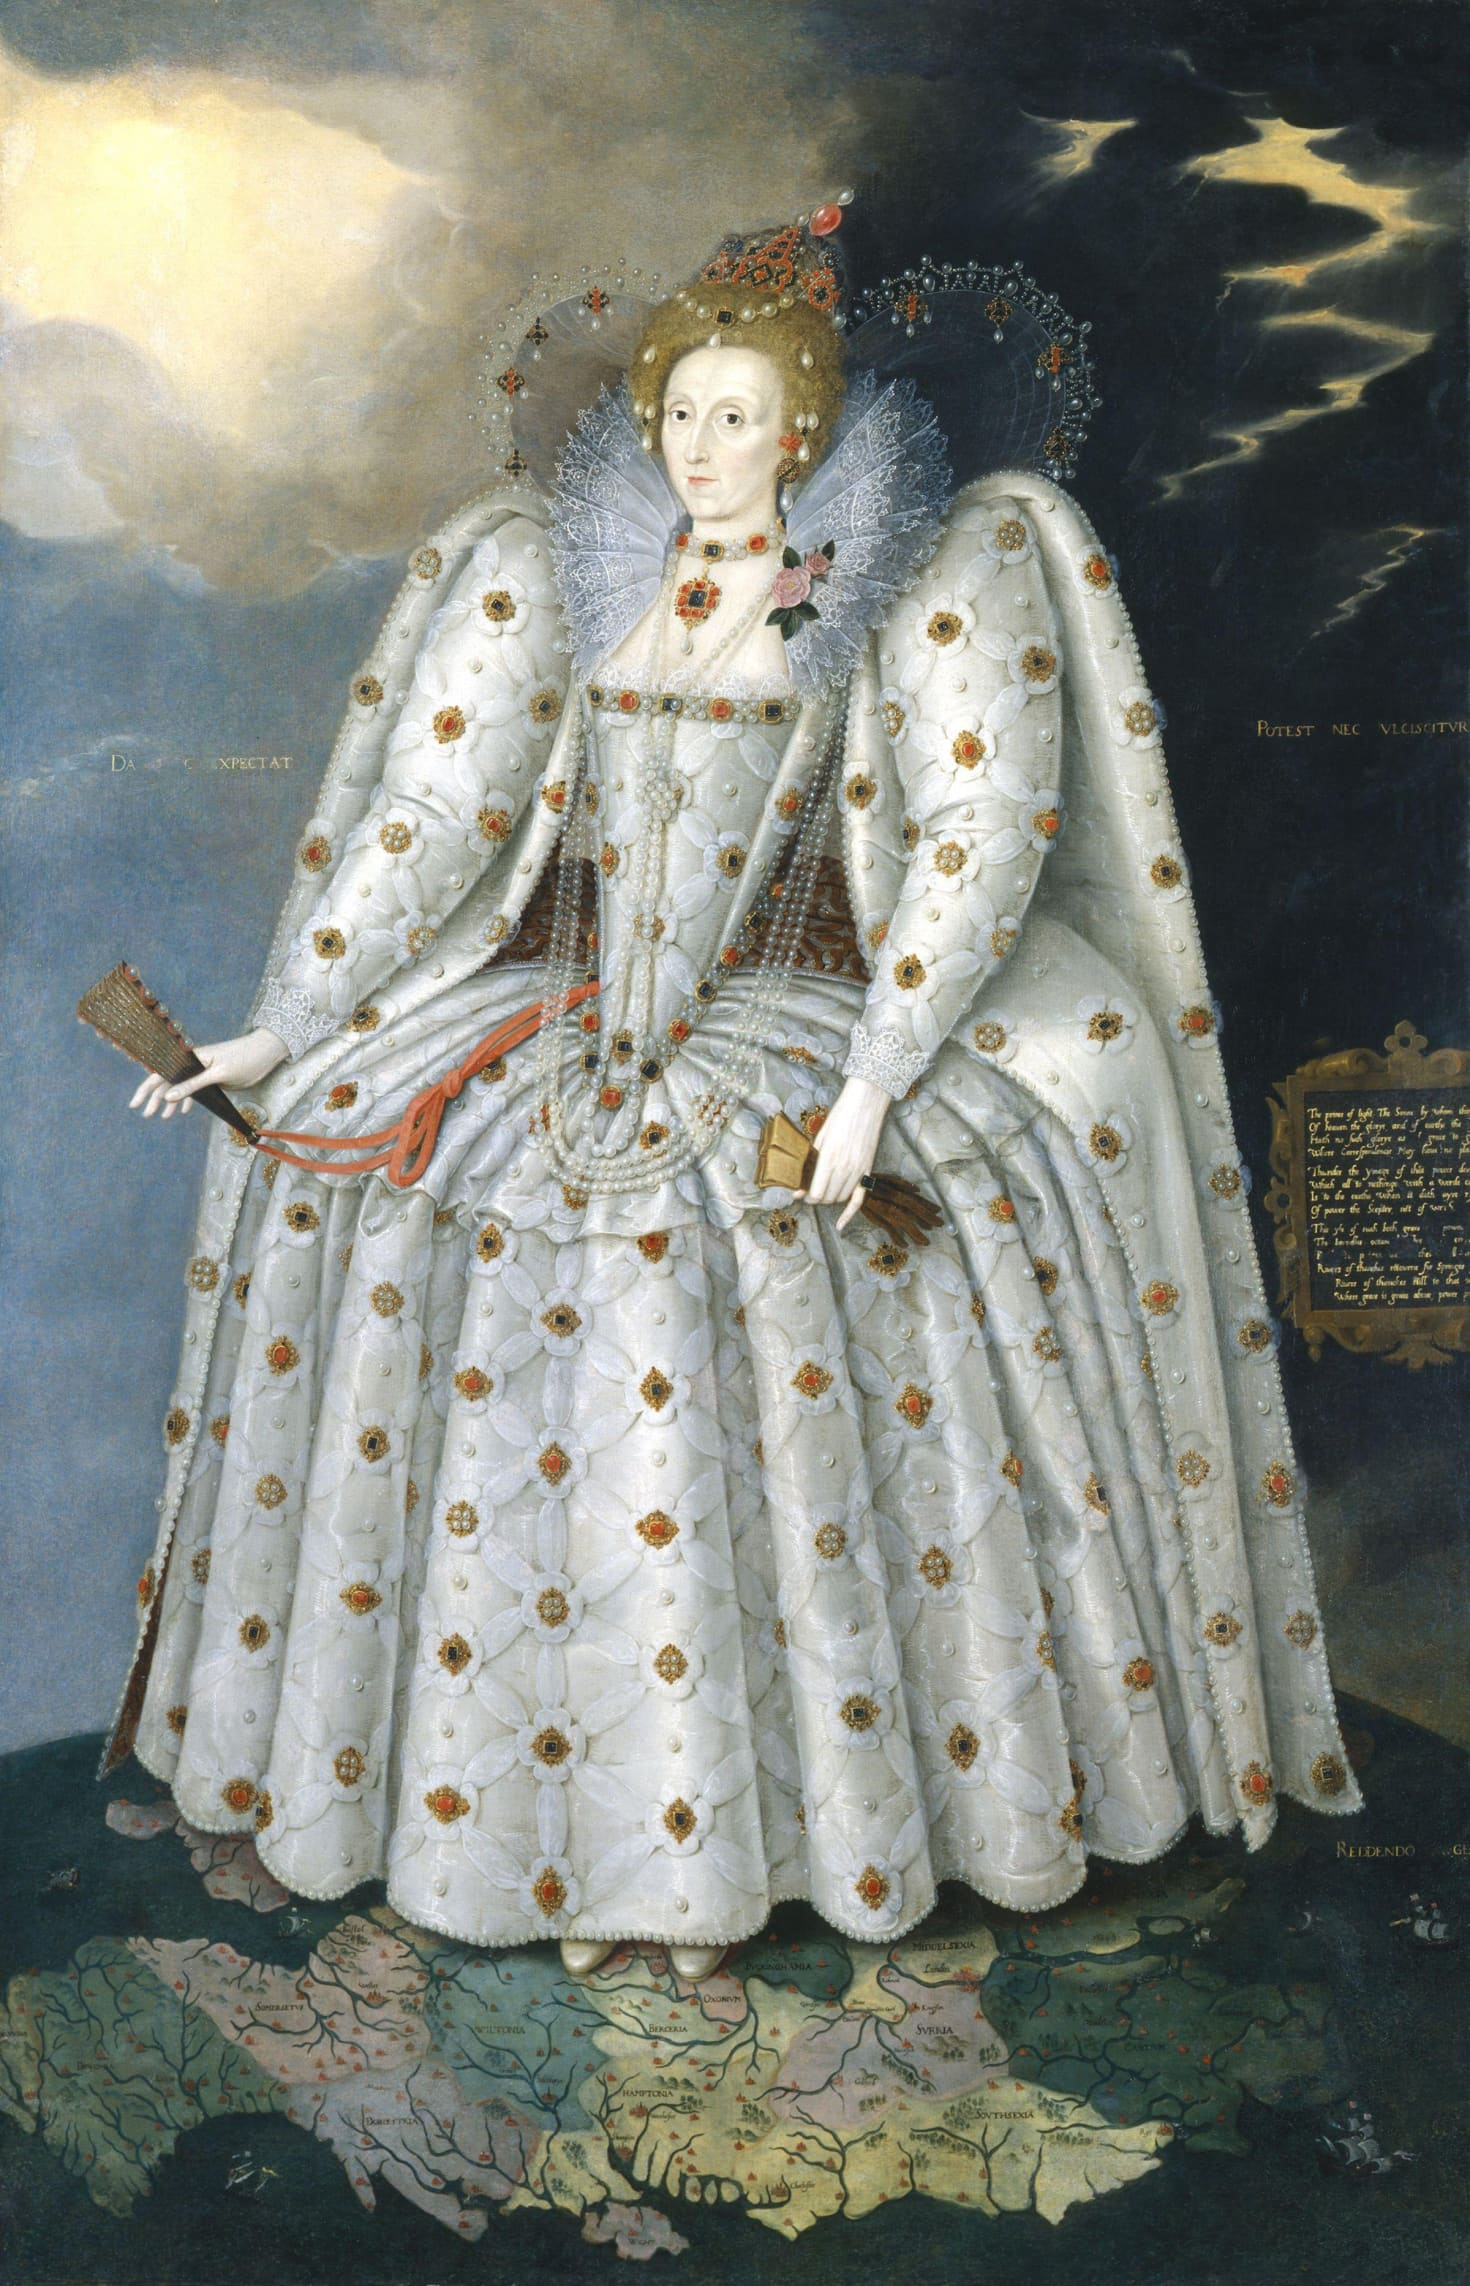 Queen Elizabeth I The Ditchley portrait by Marcus Gheeraerts the Younger